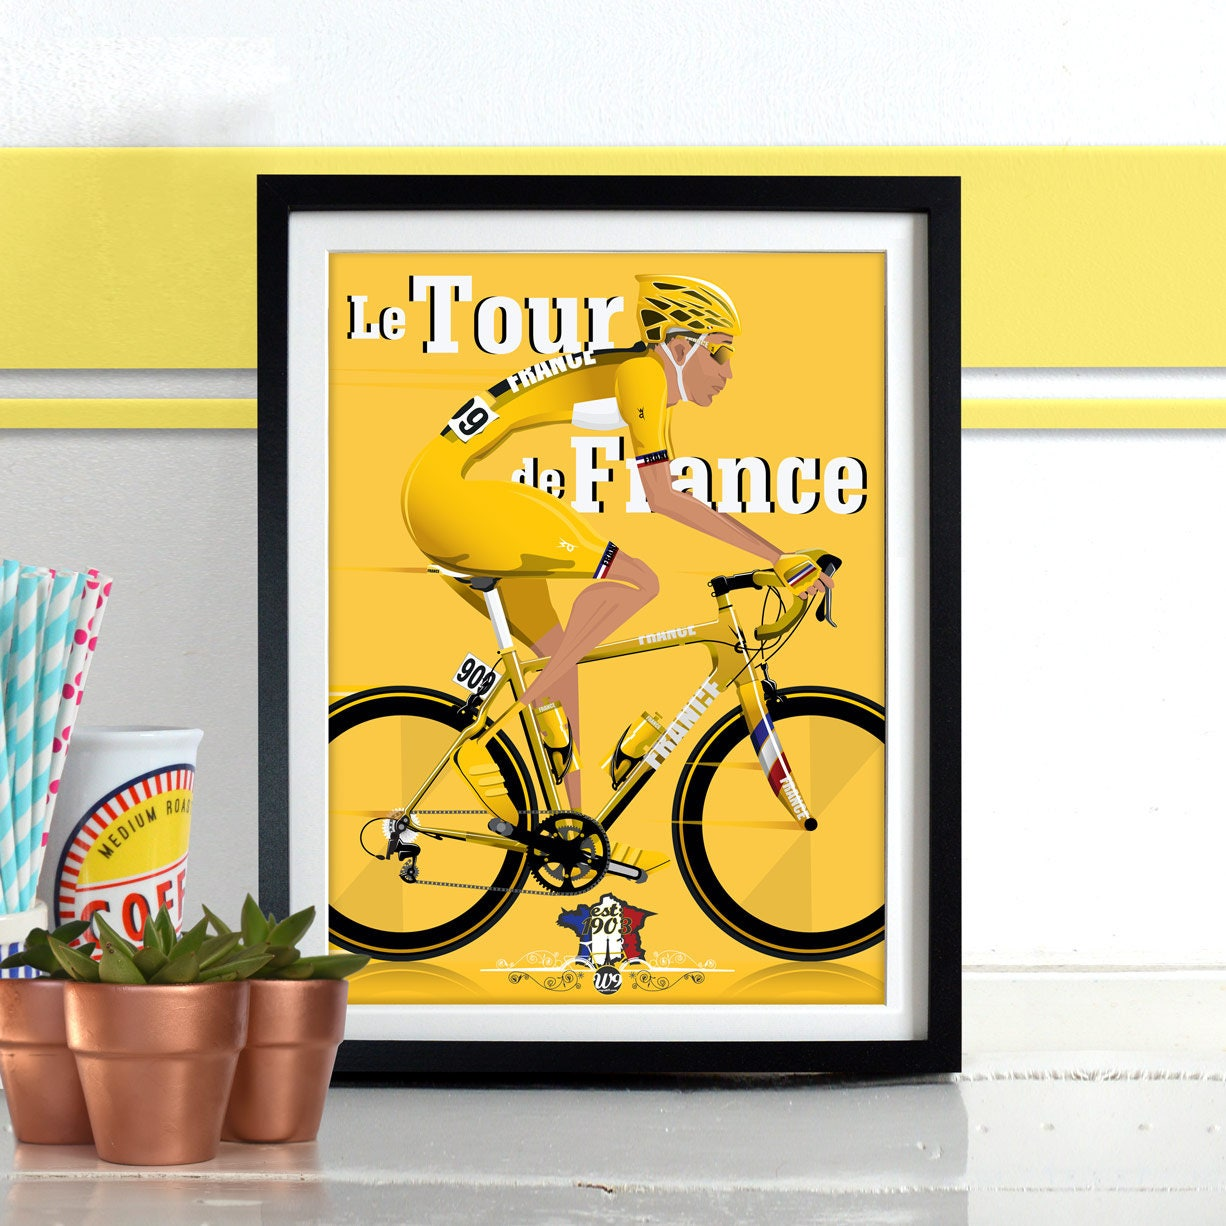 Awesome Sports Wall Decorations Pictures Inspiration - Wall Art ...